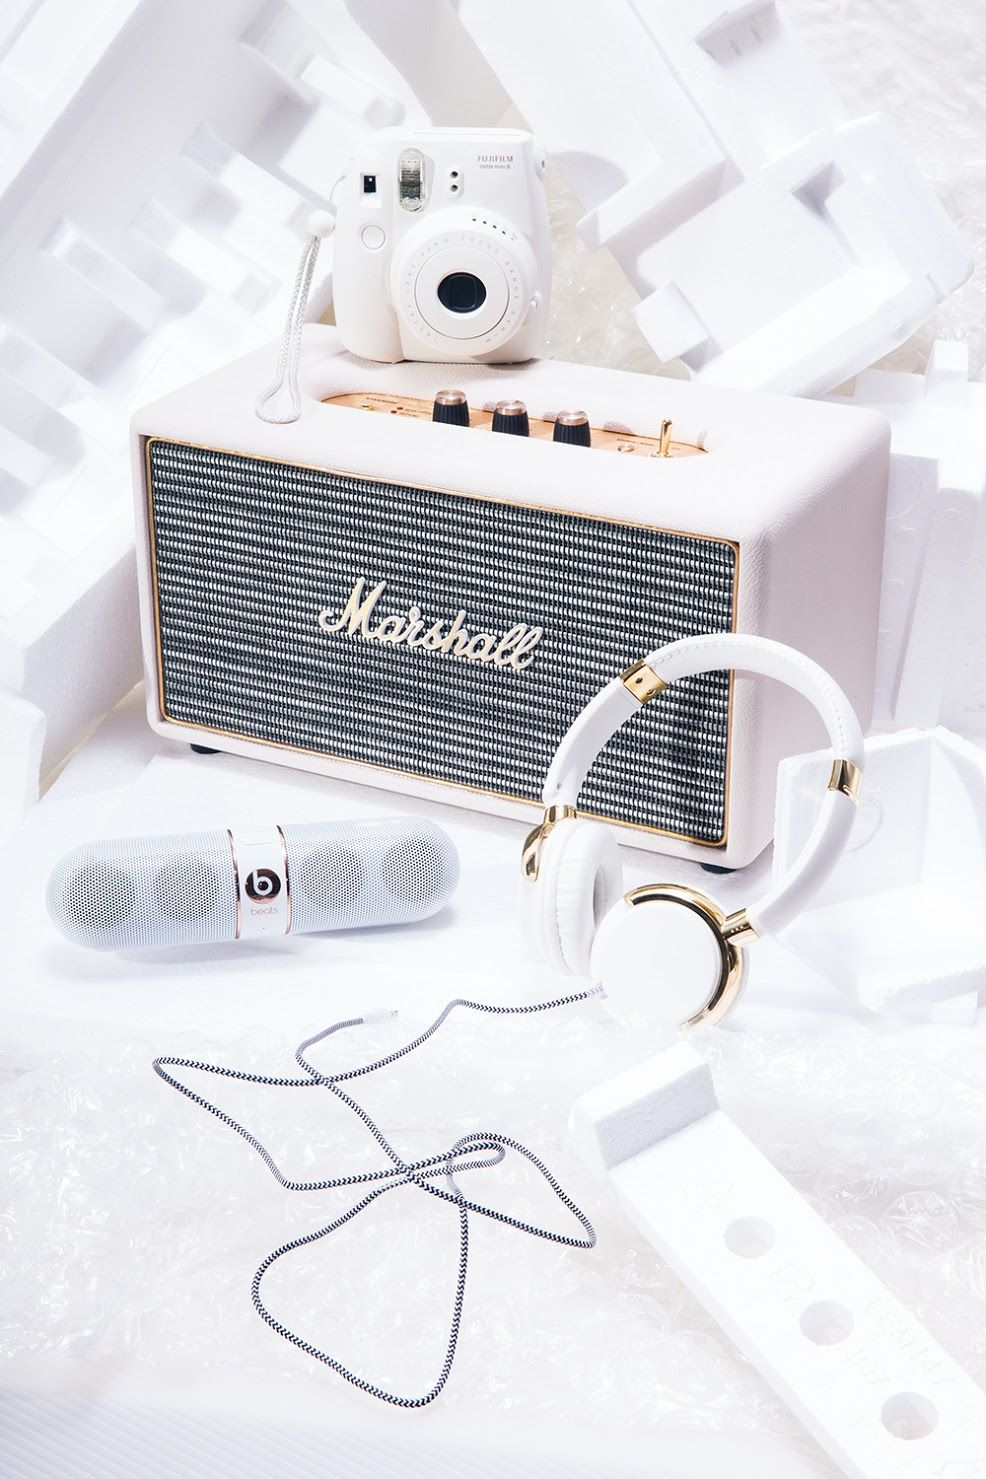 Adi Goodrich NastyGal's Holiday Gift Guide Gifts, Tech